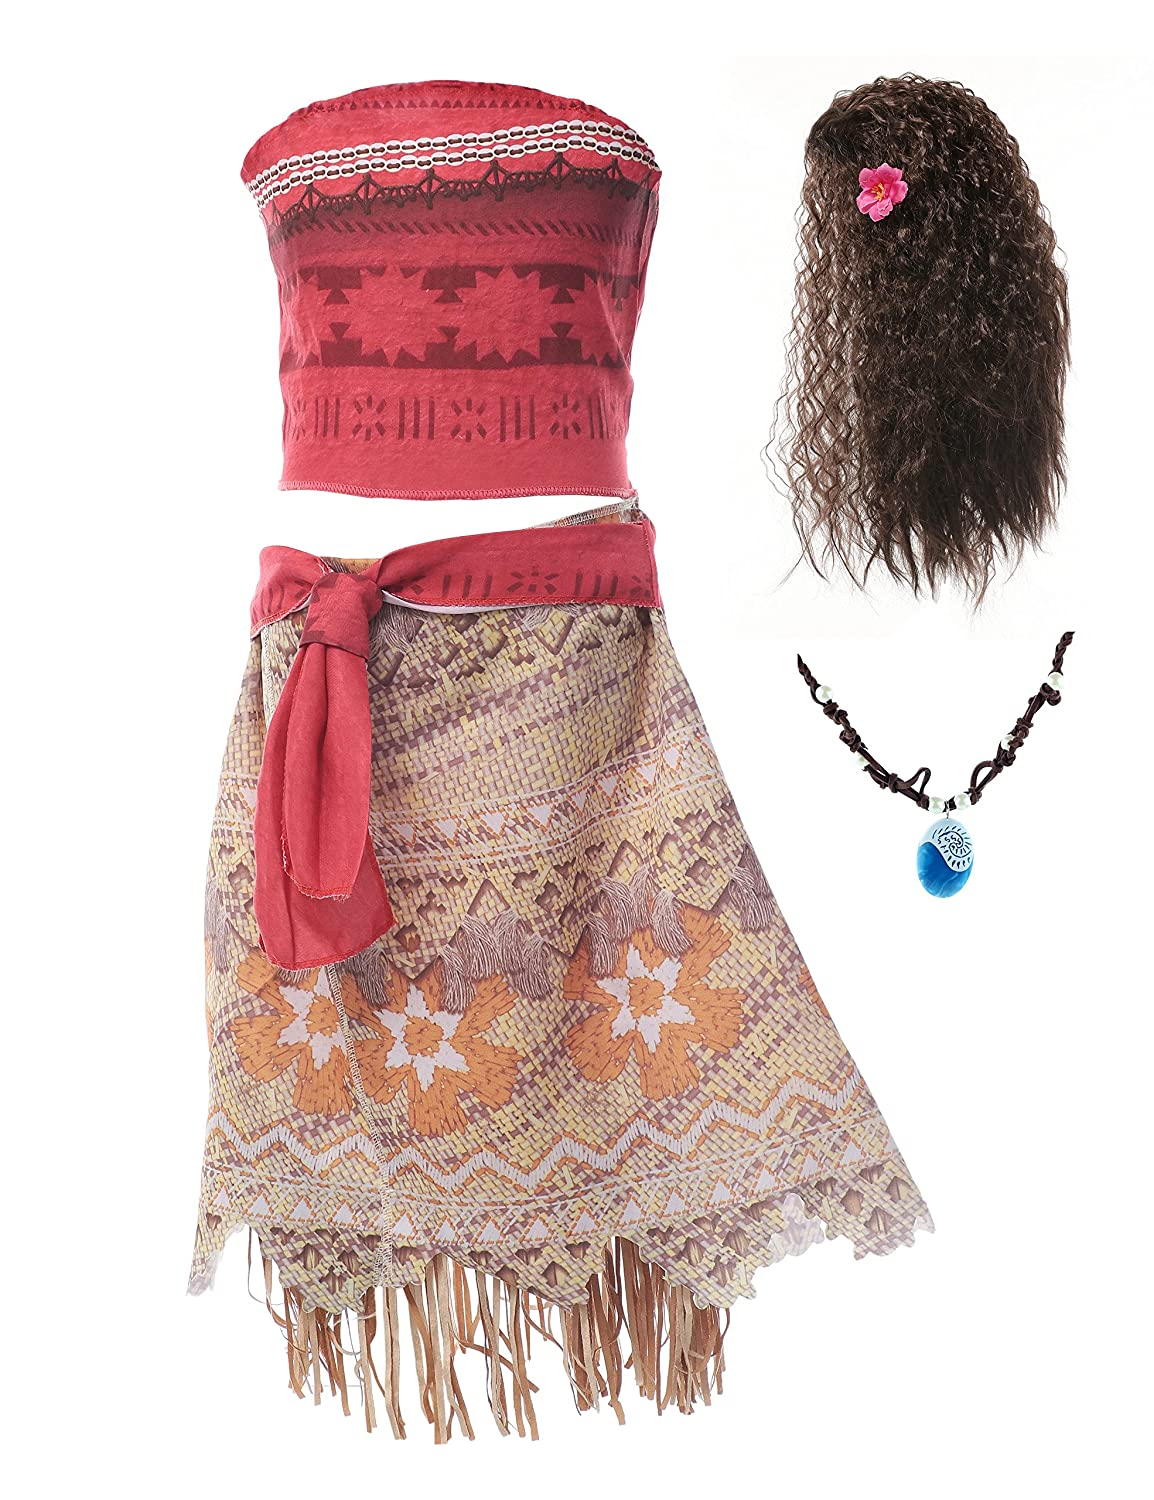 MUABABY Moana Girls Adventure Outfit Cosplay Costume Skirt Set with wig and Necklace MD-H01